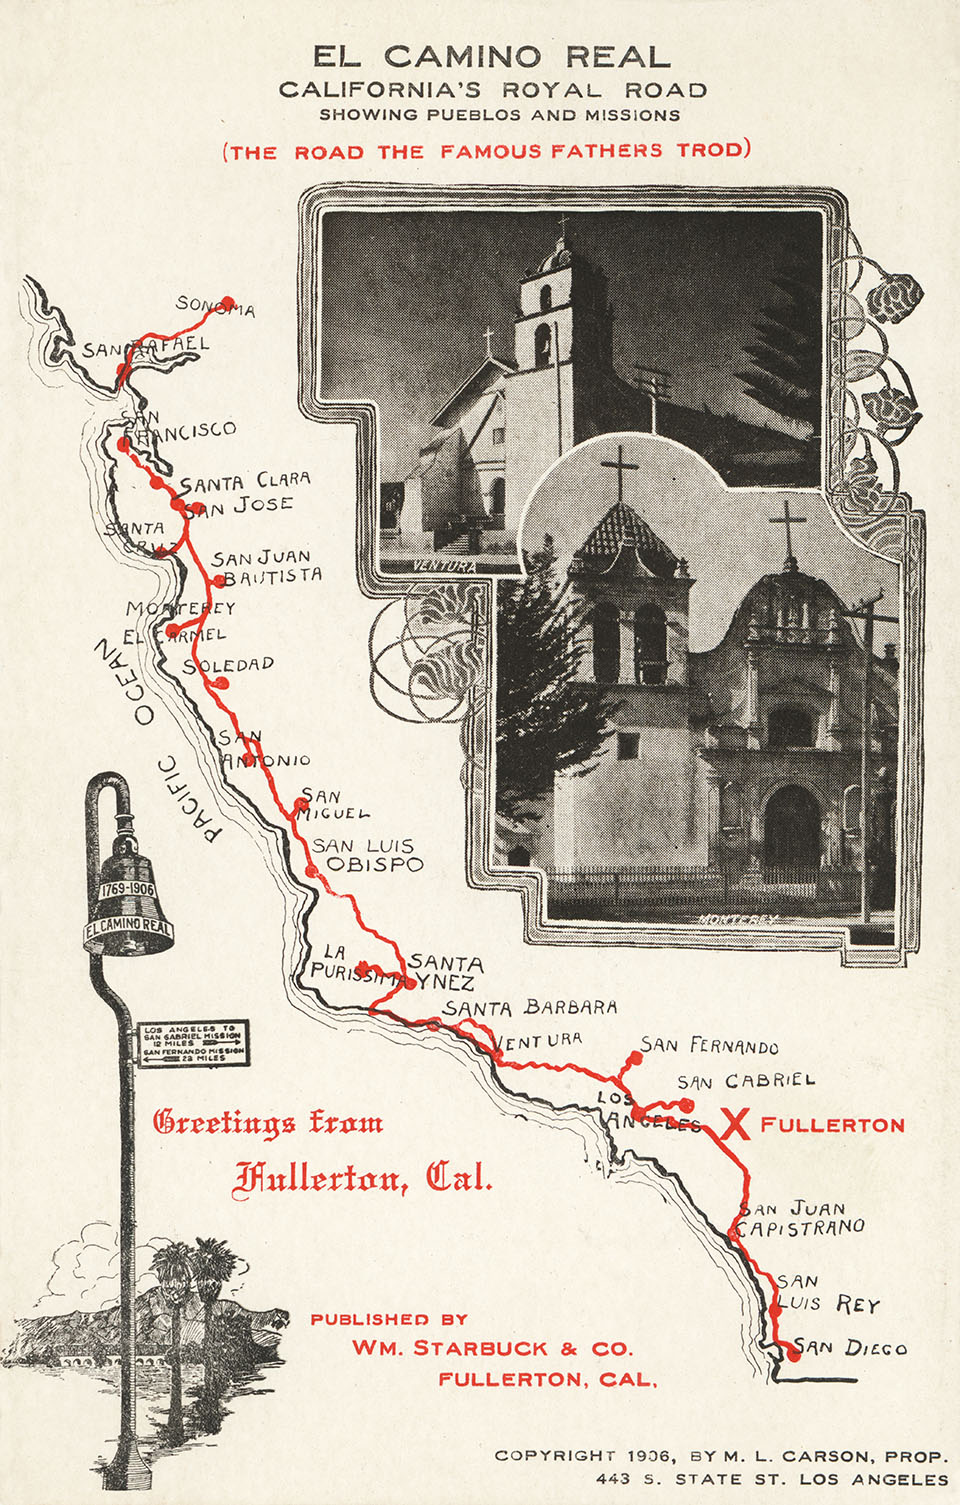 1936 map of El Camino Real